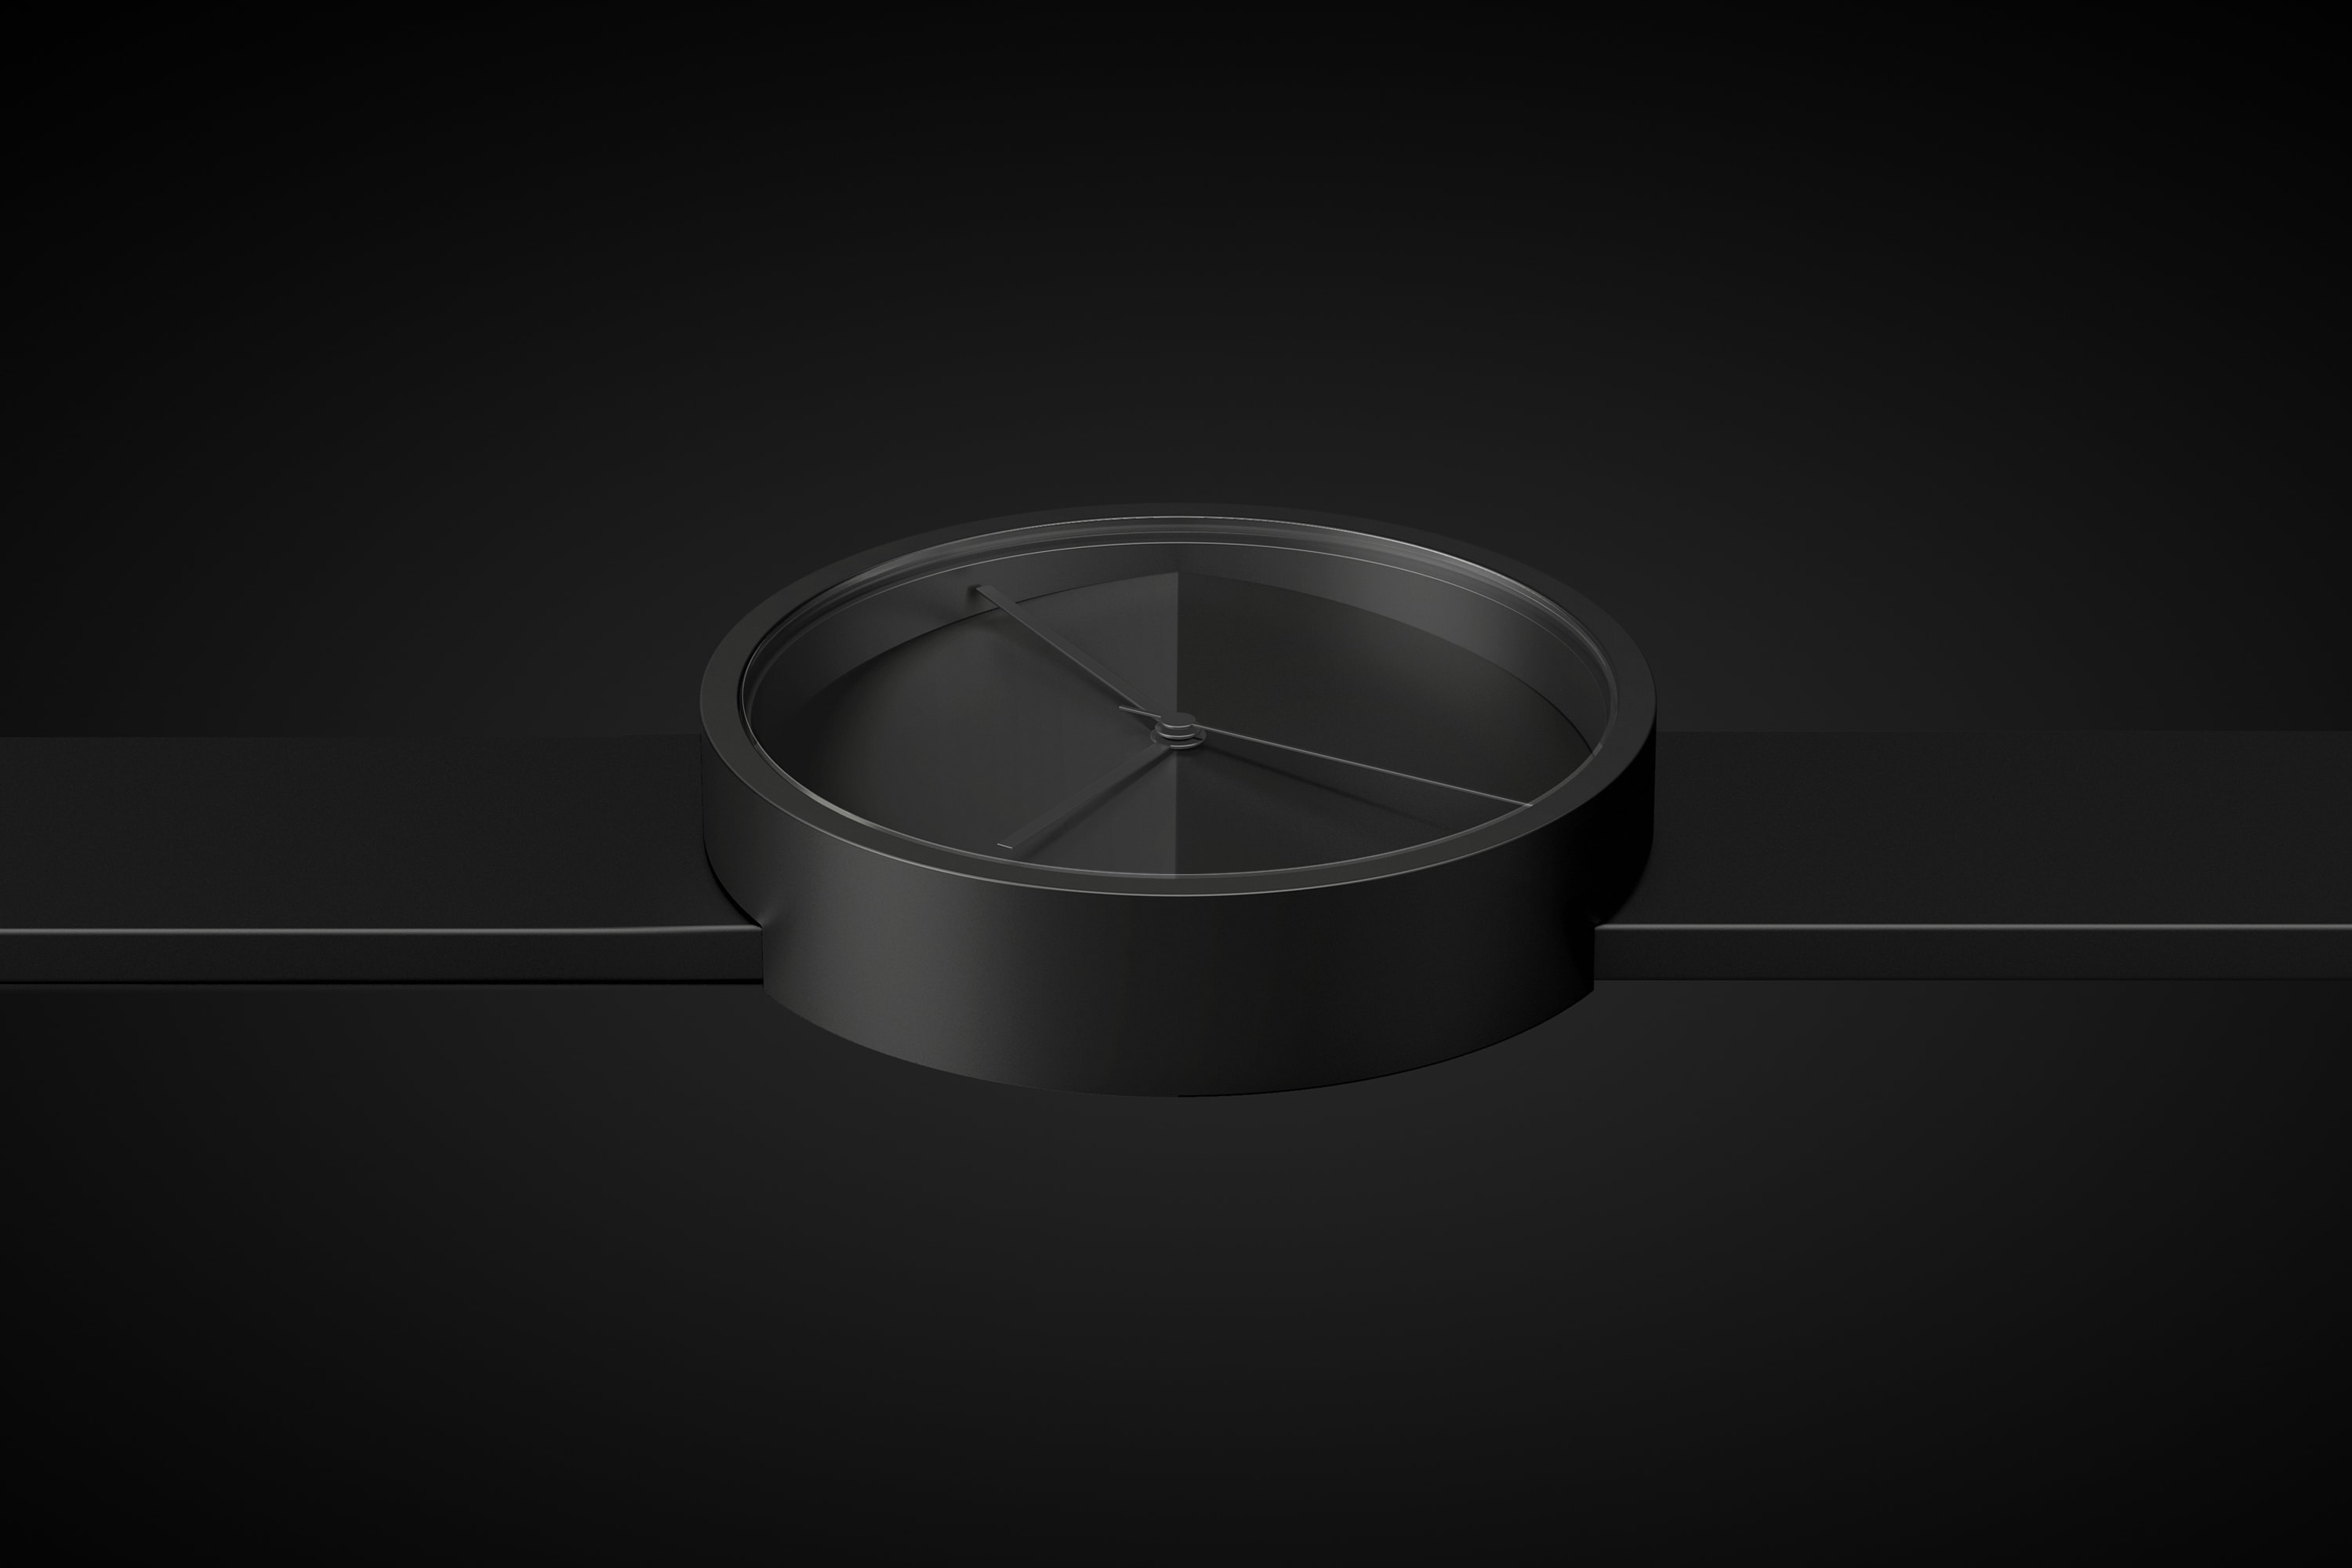 Isometric view showing the top and side of the Horizon watch face in black on a black background.